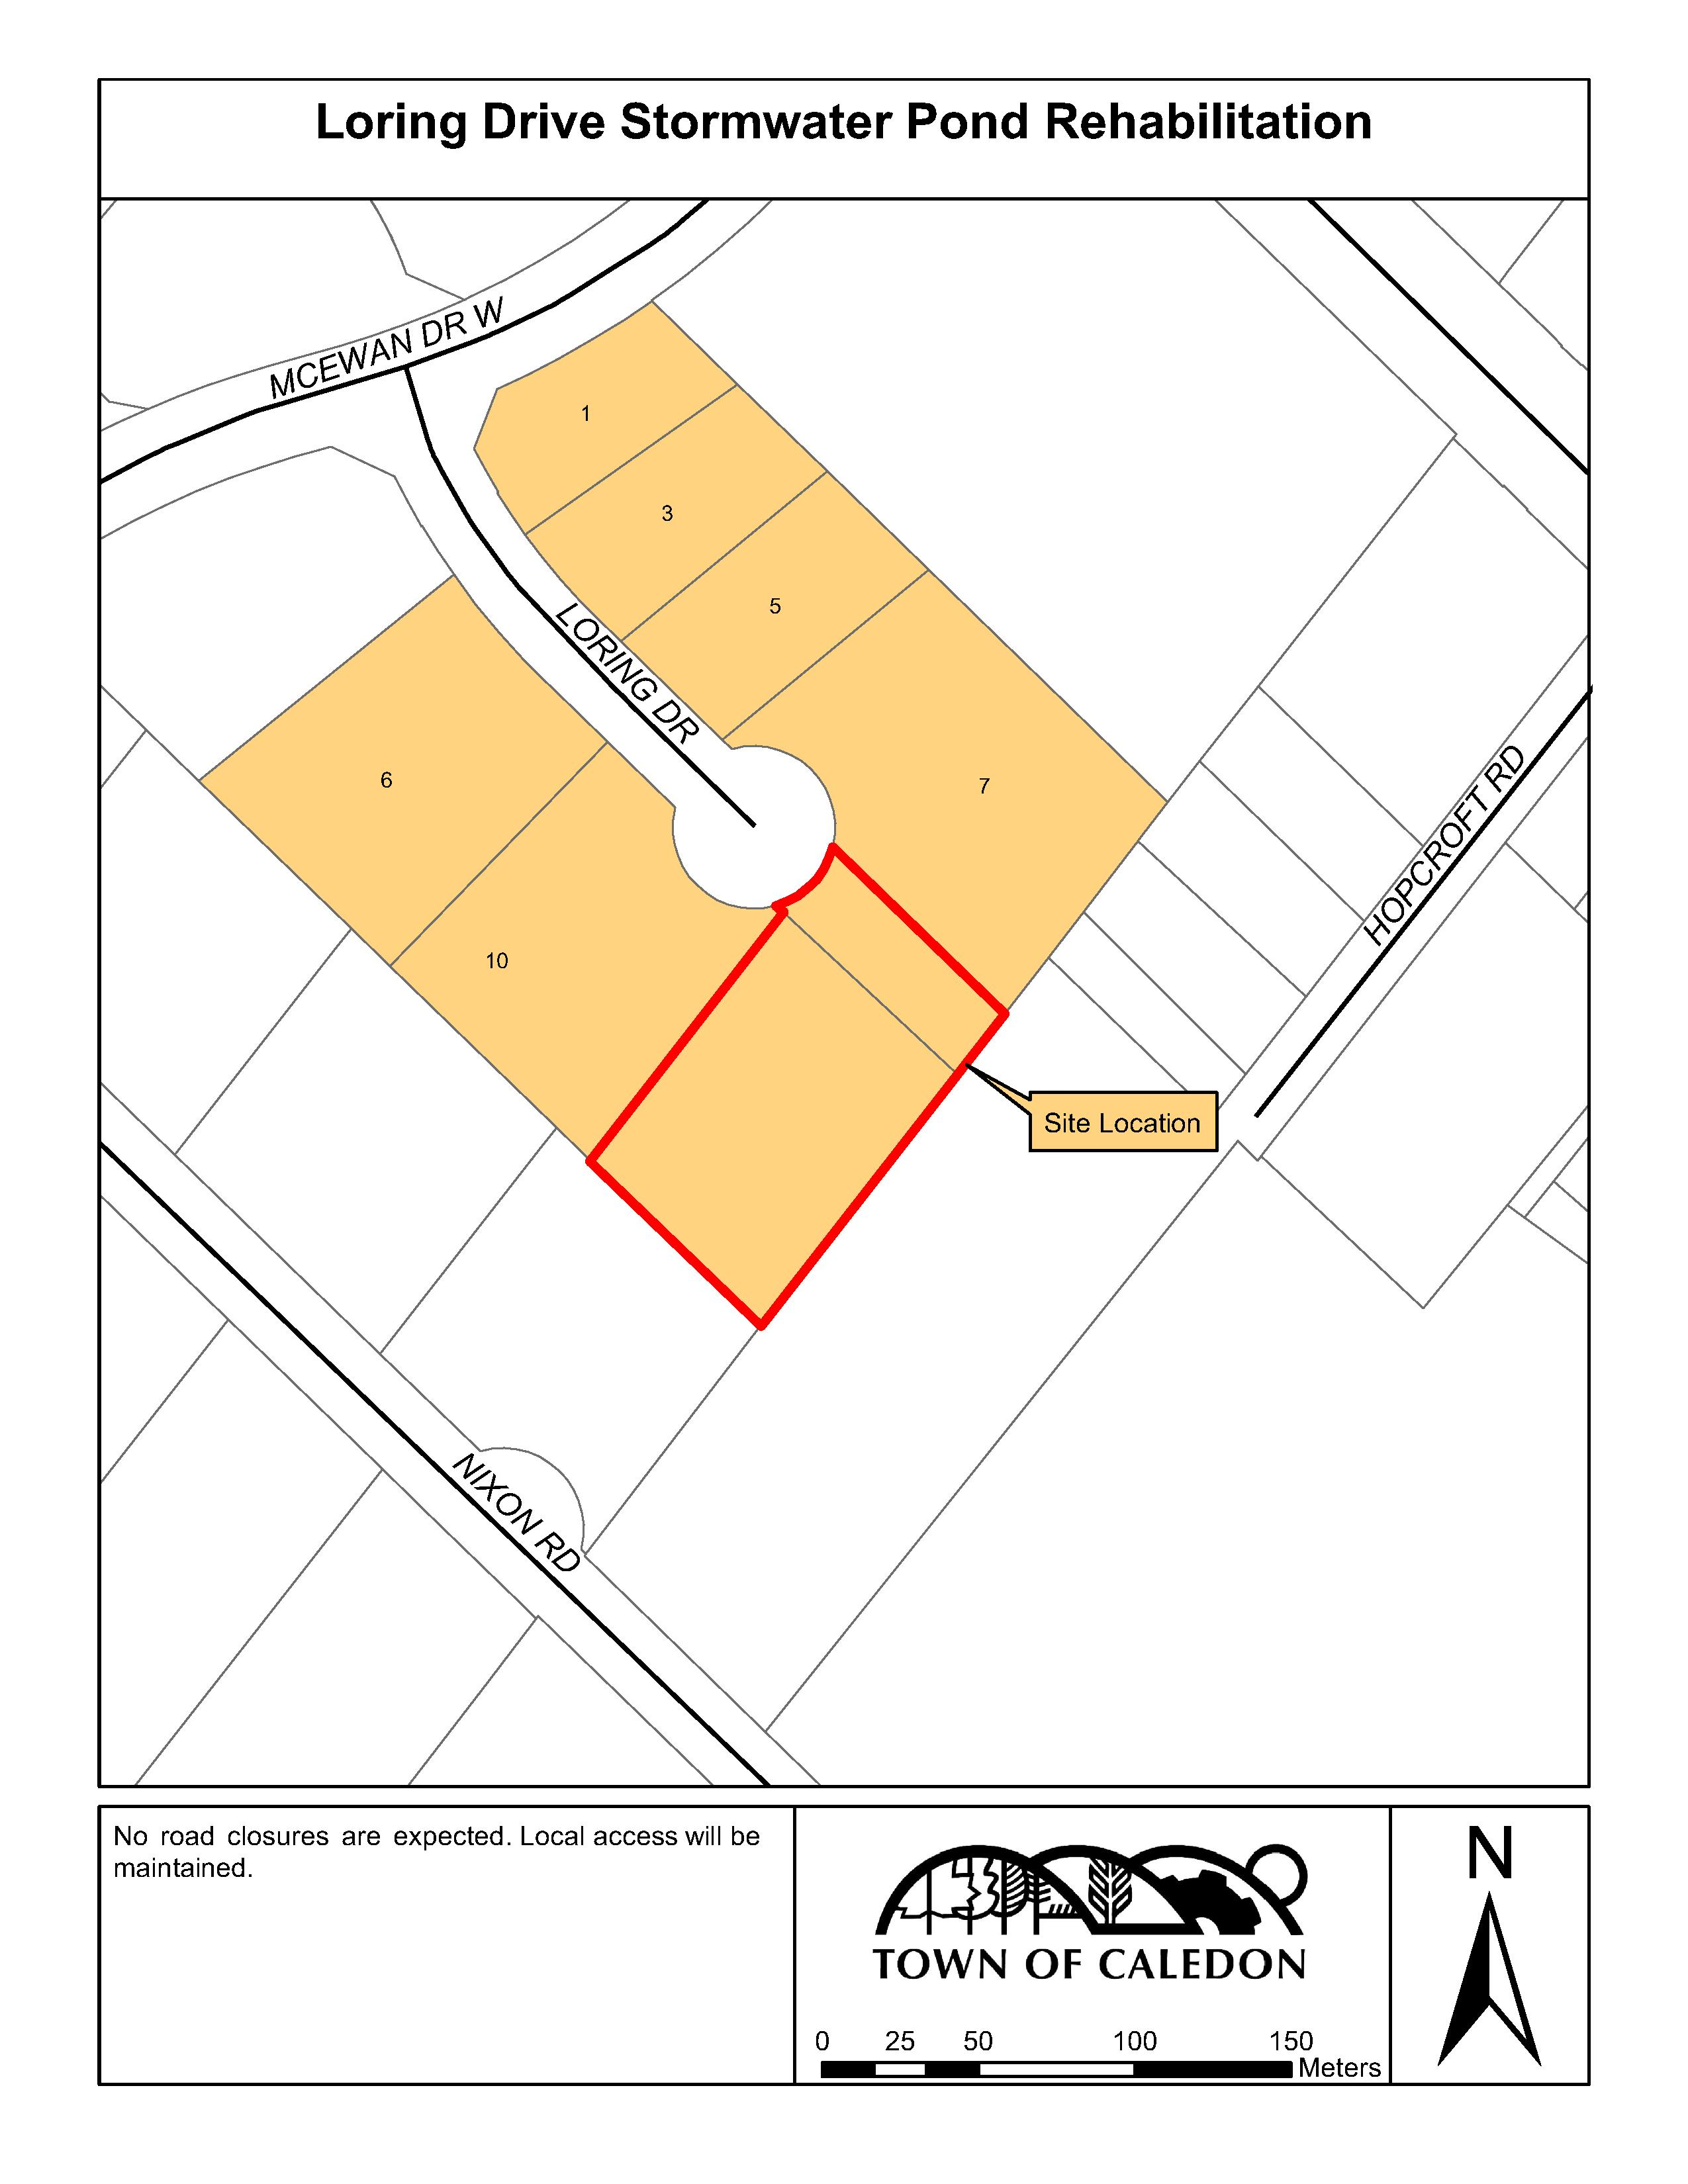 Loring Drive Stormwater Pond Site Map